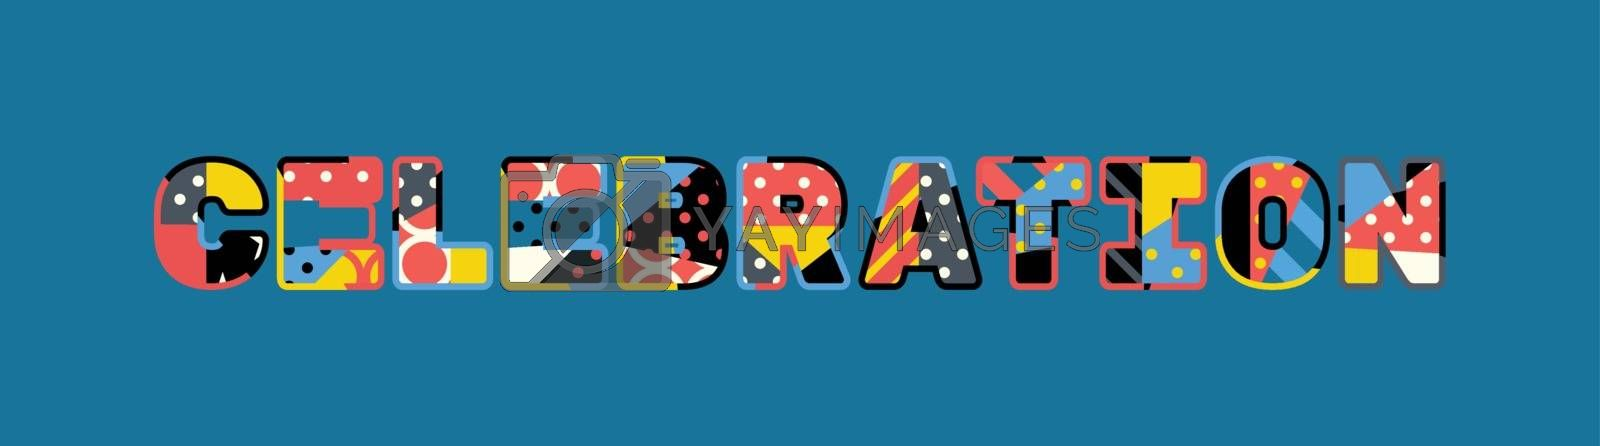 Celebration Concept Word Art Illustration by enterlinedesign